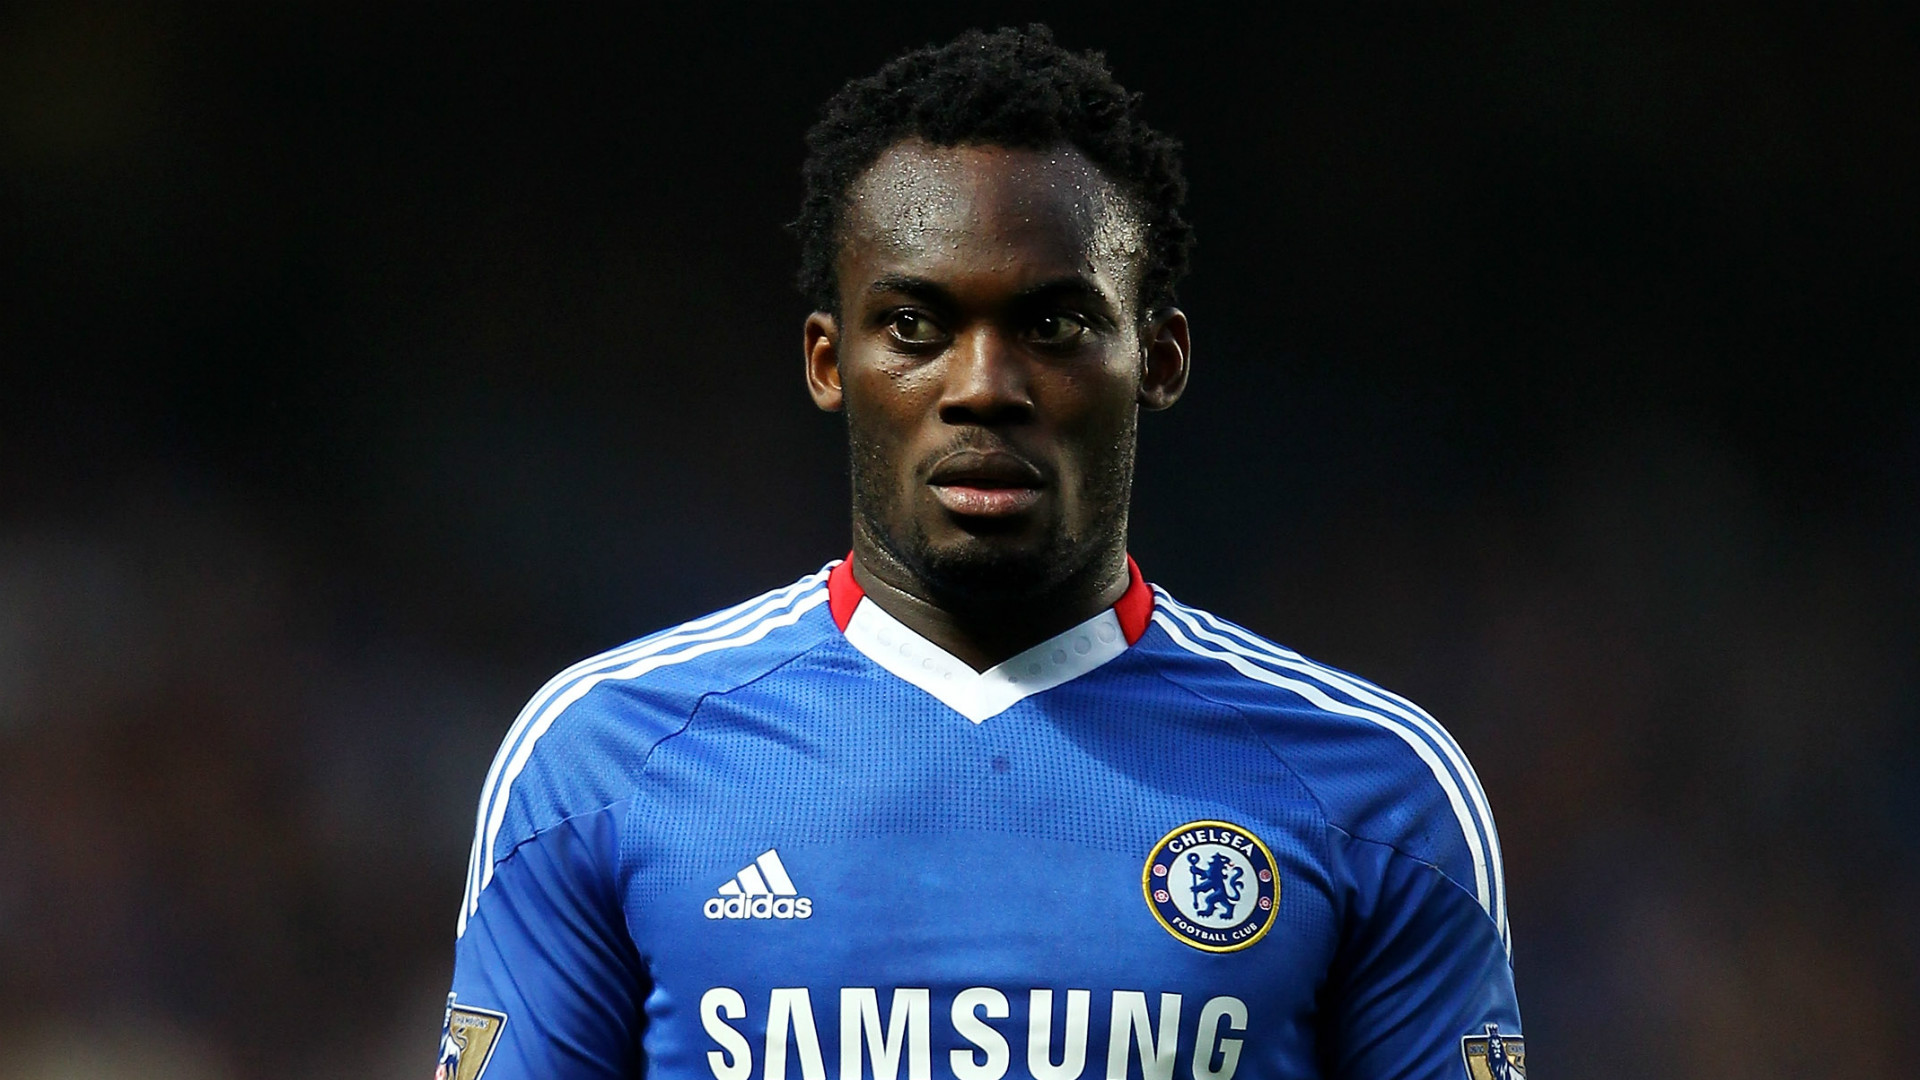 Ex-Chelsea midfielder Michael Essien joins Indonesian club